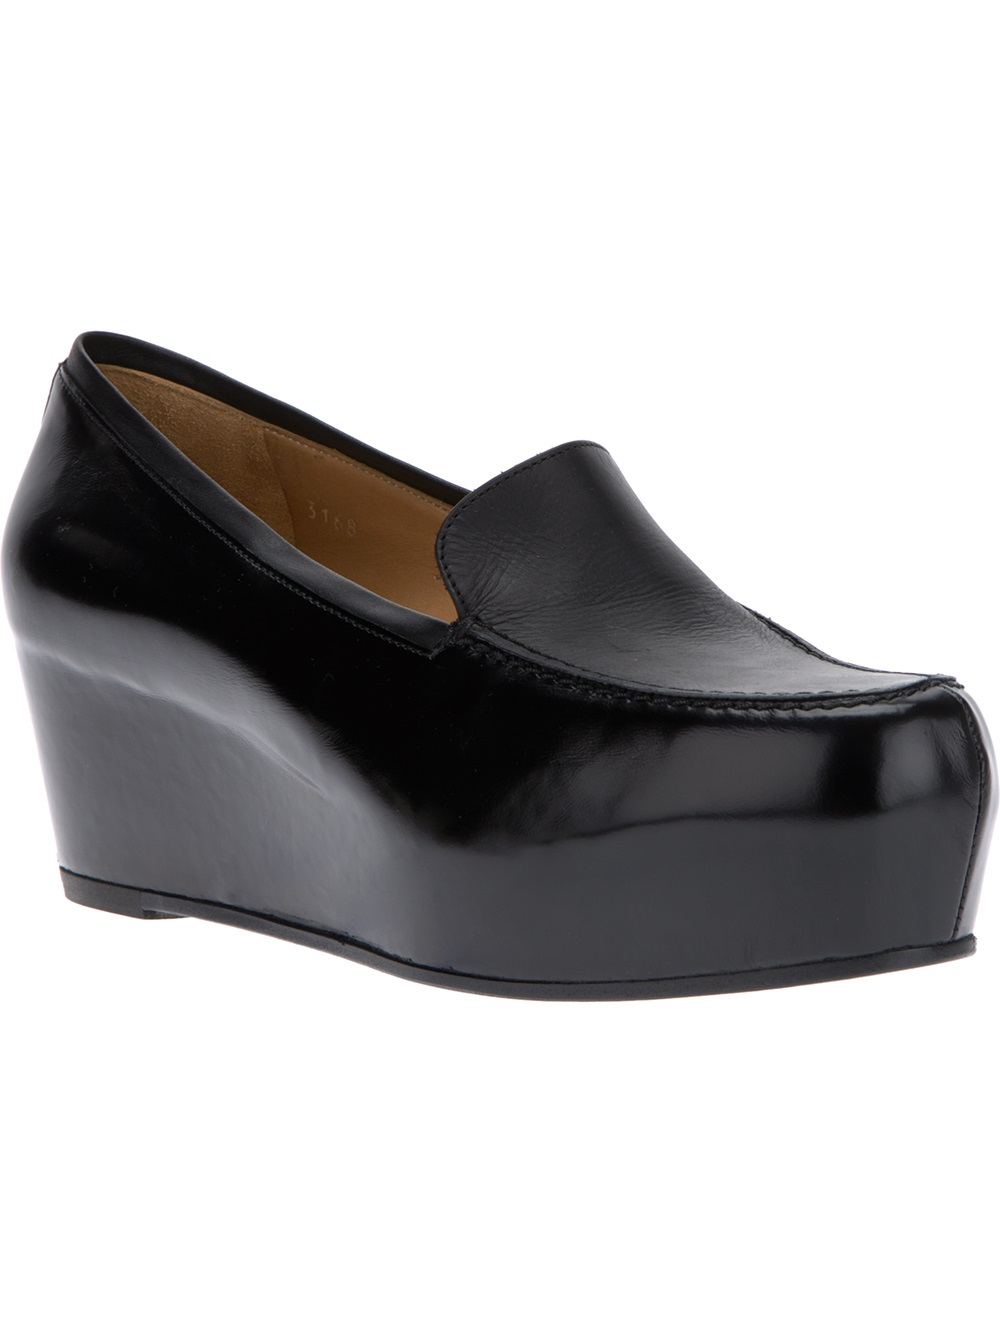 Shop for trendy fashion Loafers for women online at PopJulia. Find the newest styles of Loafers with affordable prices.